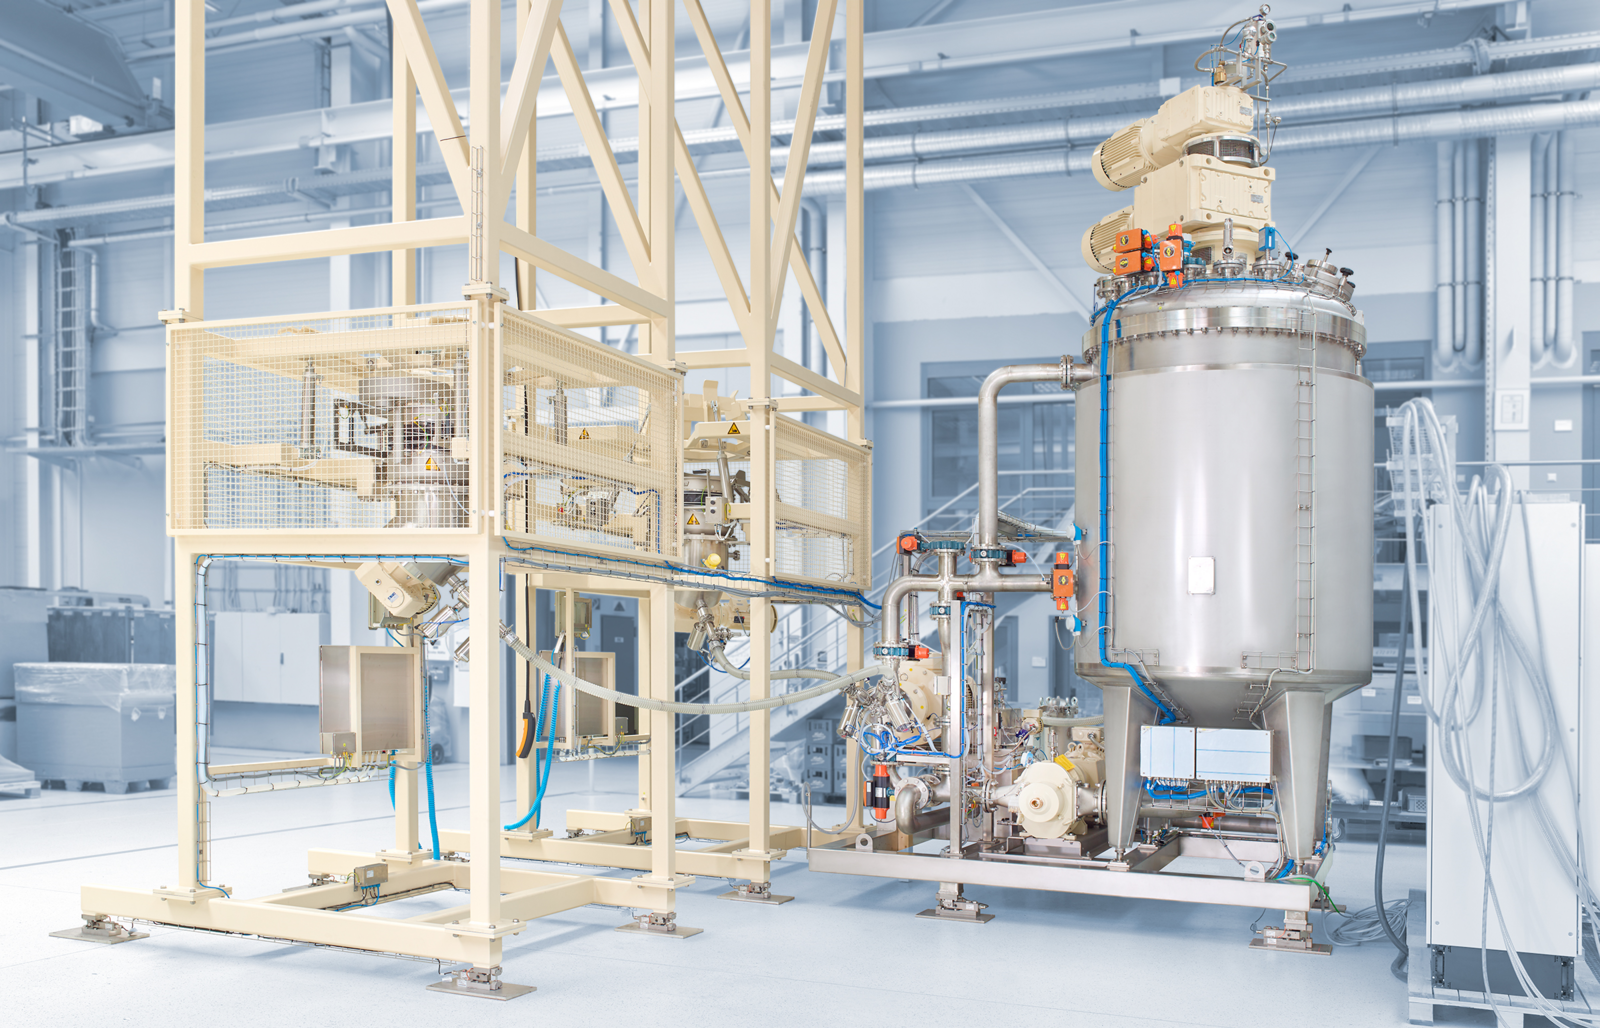 ystral process systems Hardeners or resin formulations